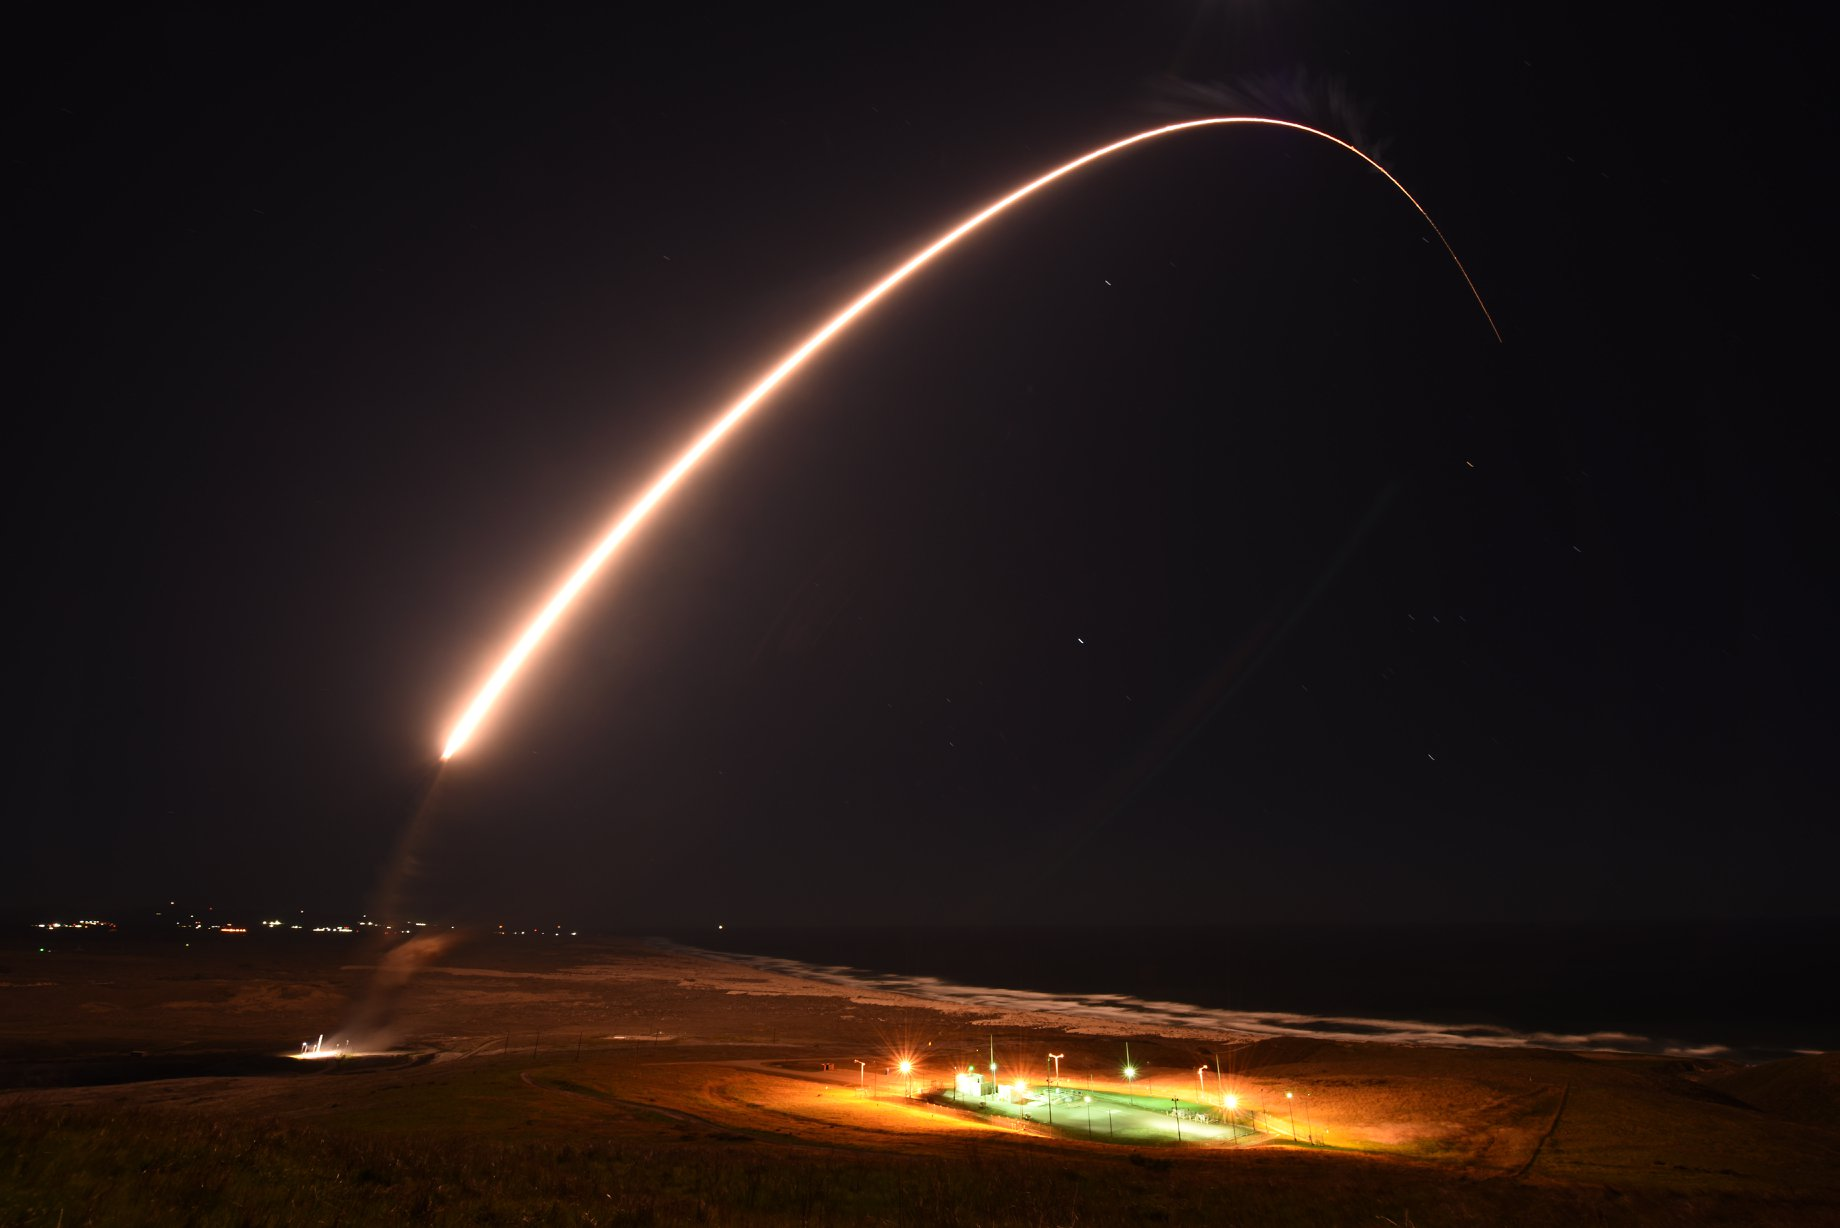 An Air Force Global Strike Command unarmed Minuteman III intercontinental ballistic missile launches during an operation test at at Vandenberg Air Force Base on Feb. 23, 2021. (Vandenberg Air Force Base)